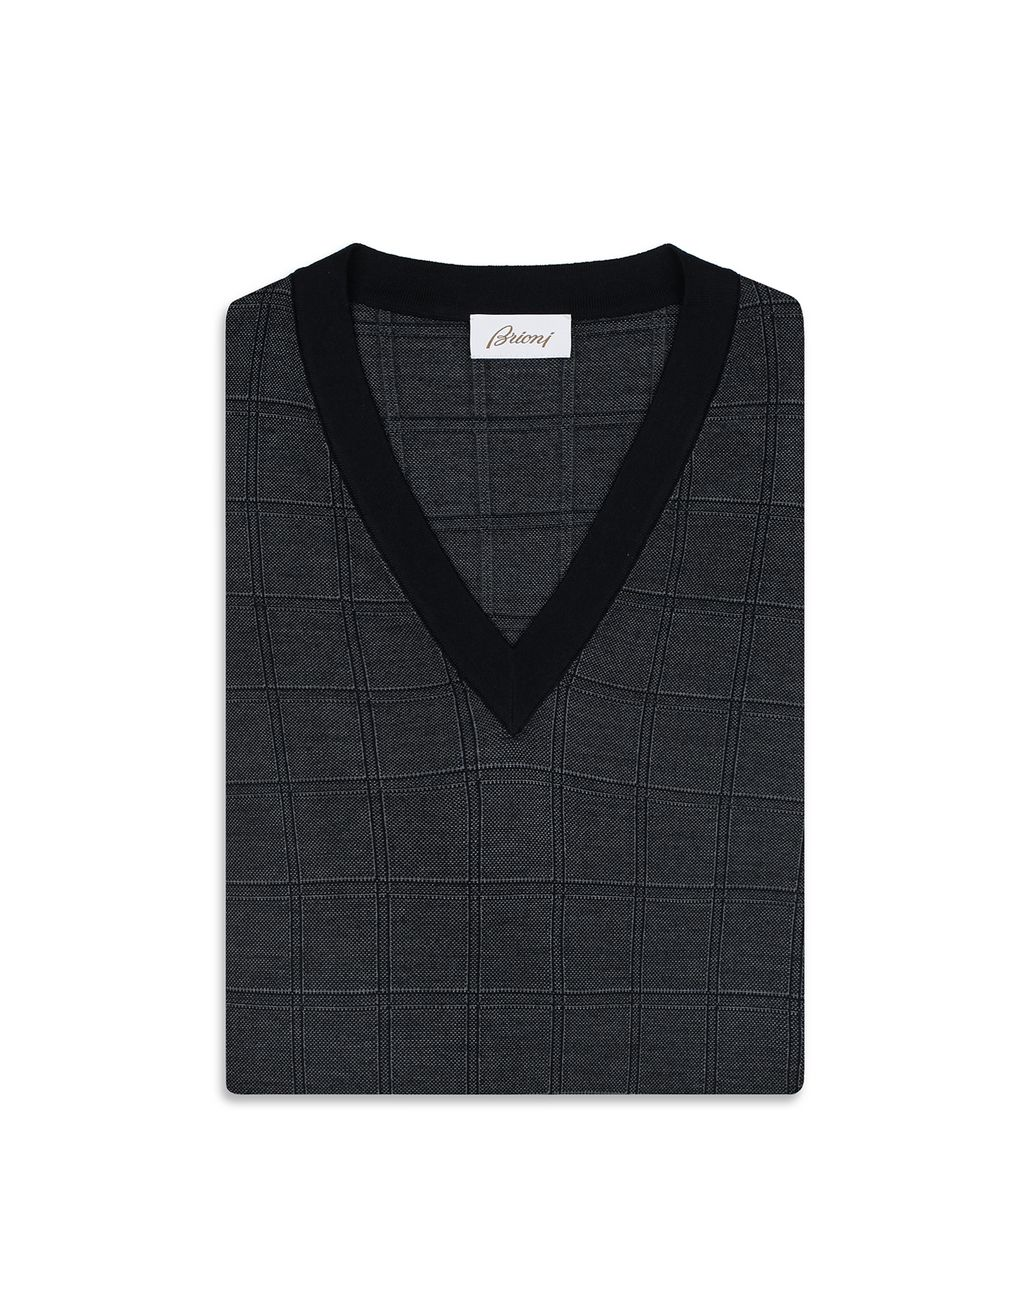 BRIONI Navy Blue Window Check Crew Neck Sweater Knitwear [*** pickupInStoreShippingNotGuaranteed_info ***] e